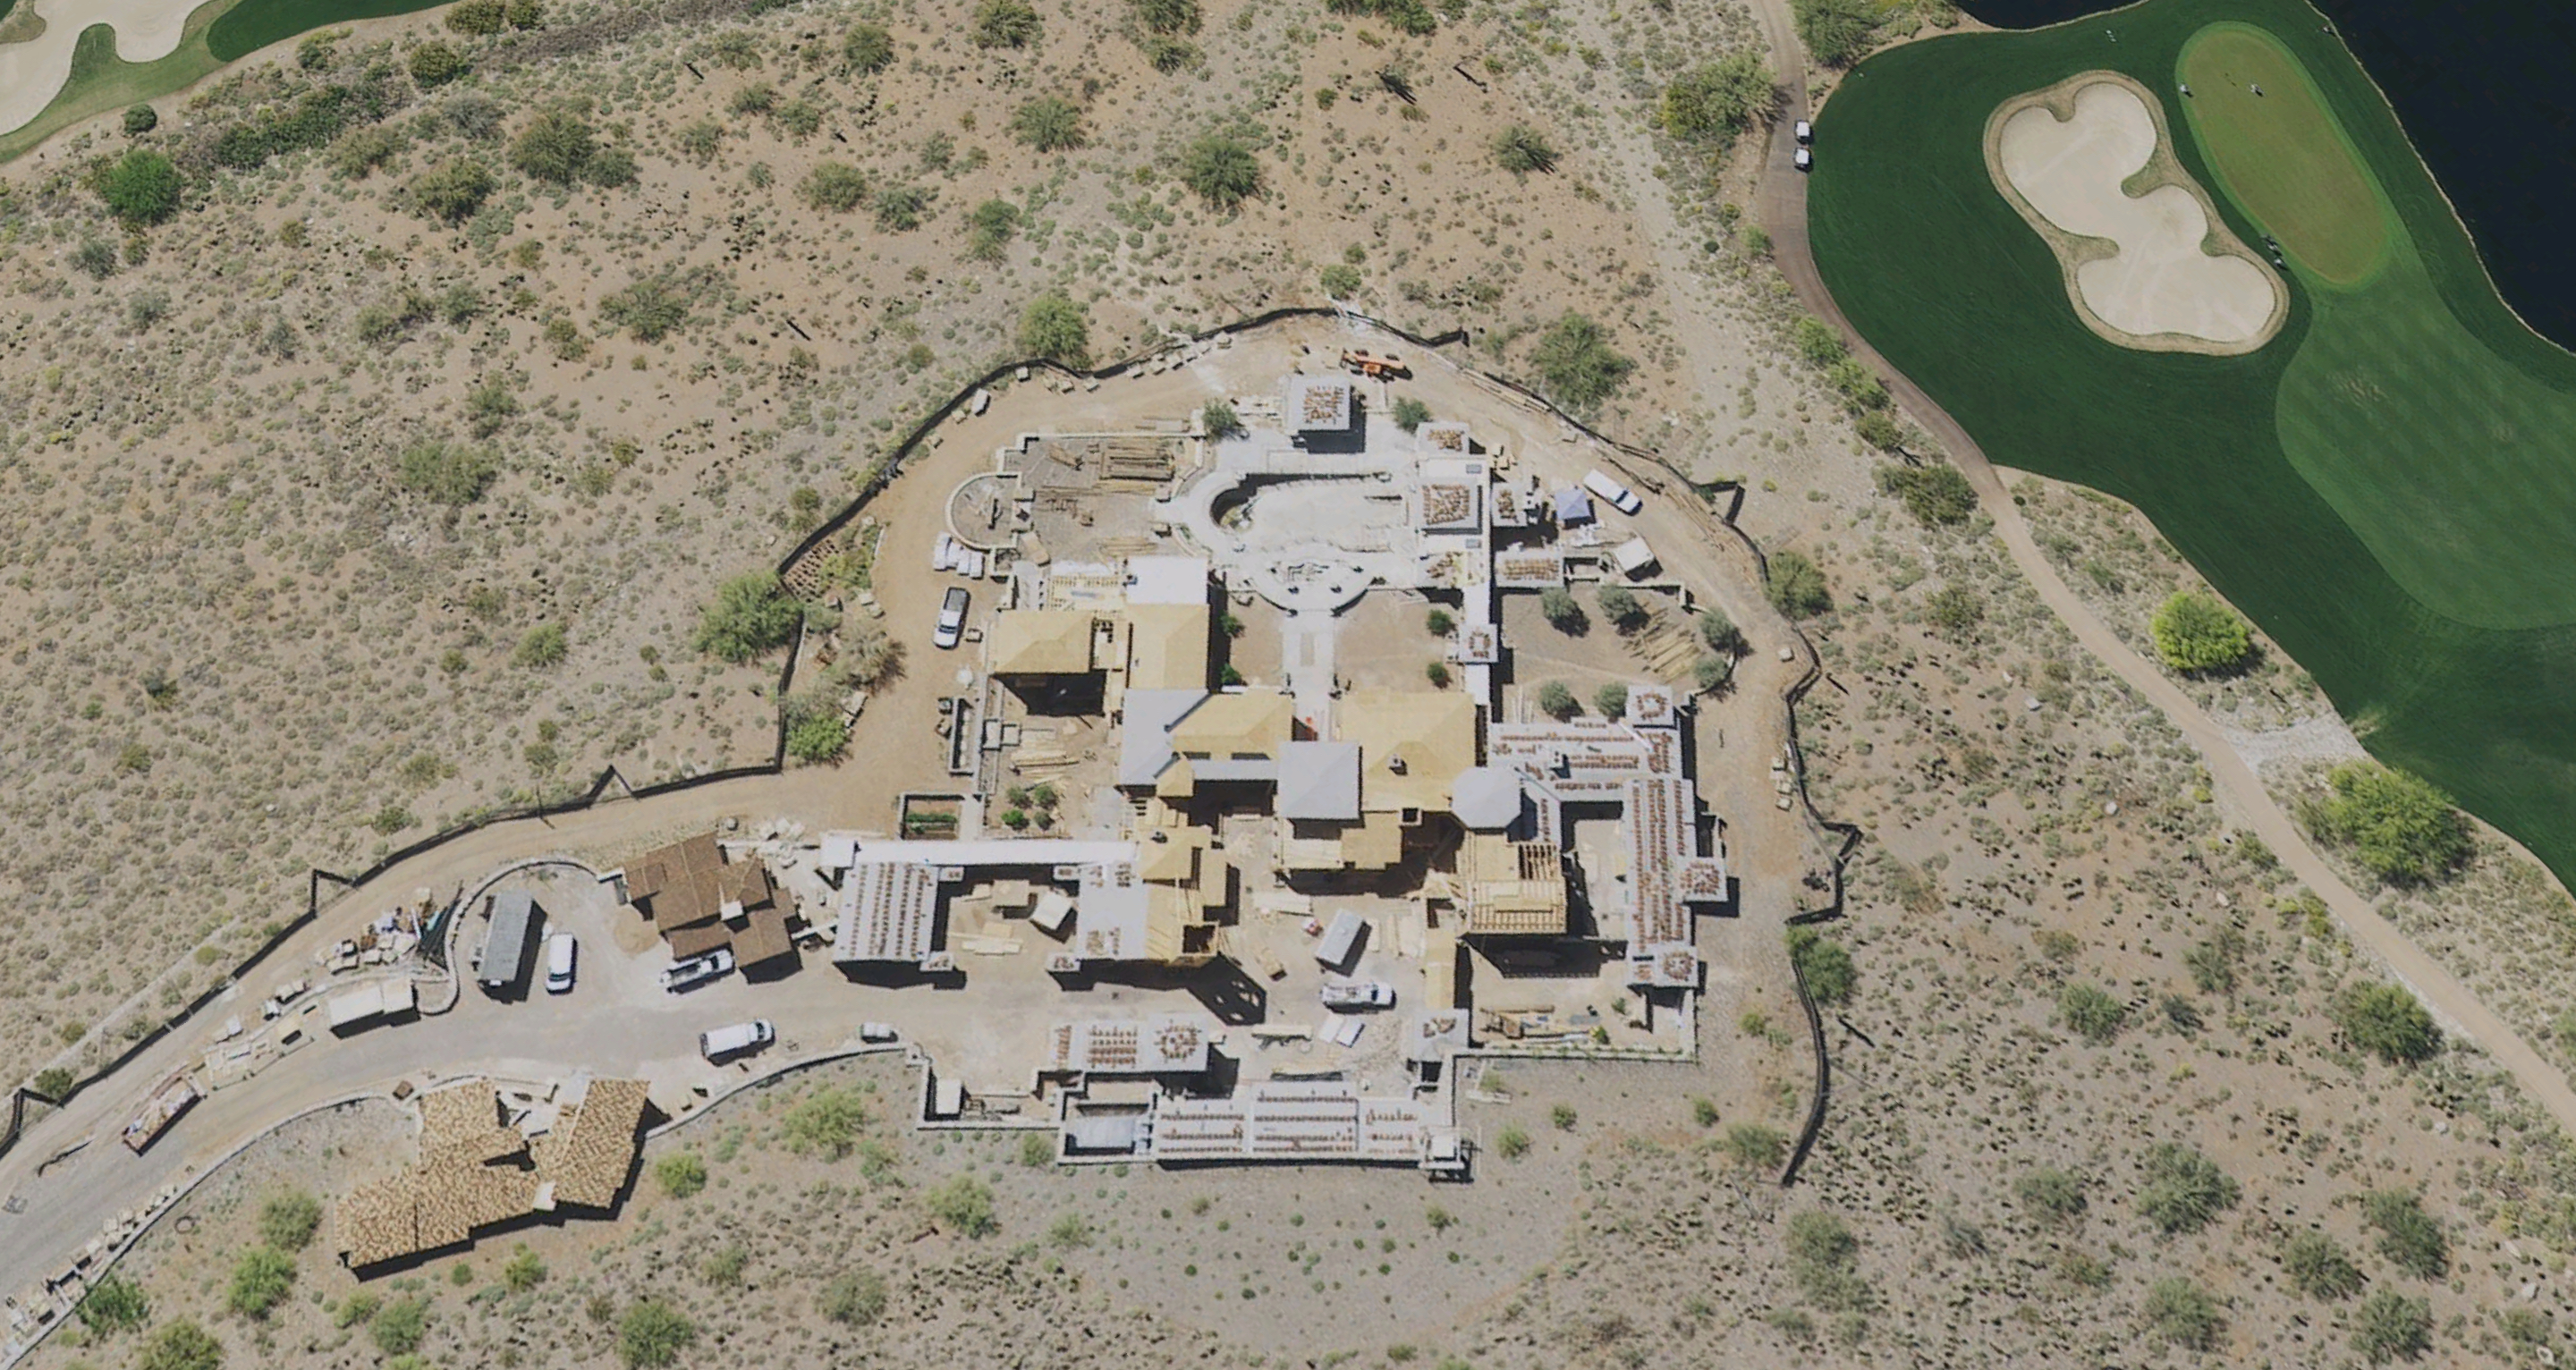 Roofing Massive Scottsdale Mansion with Redlands Clay Tile and topped with Zinc Dome